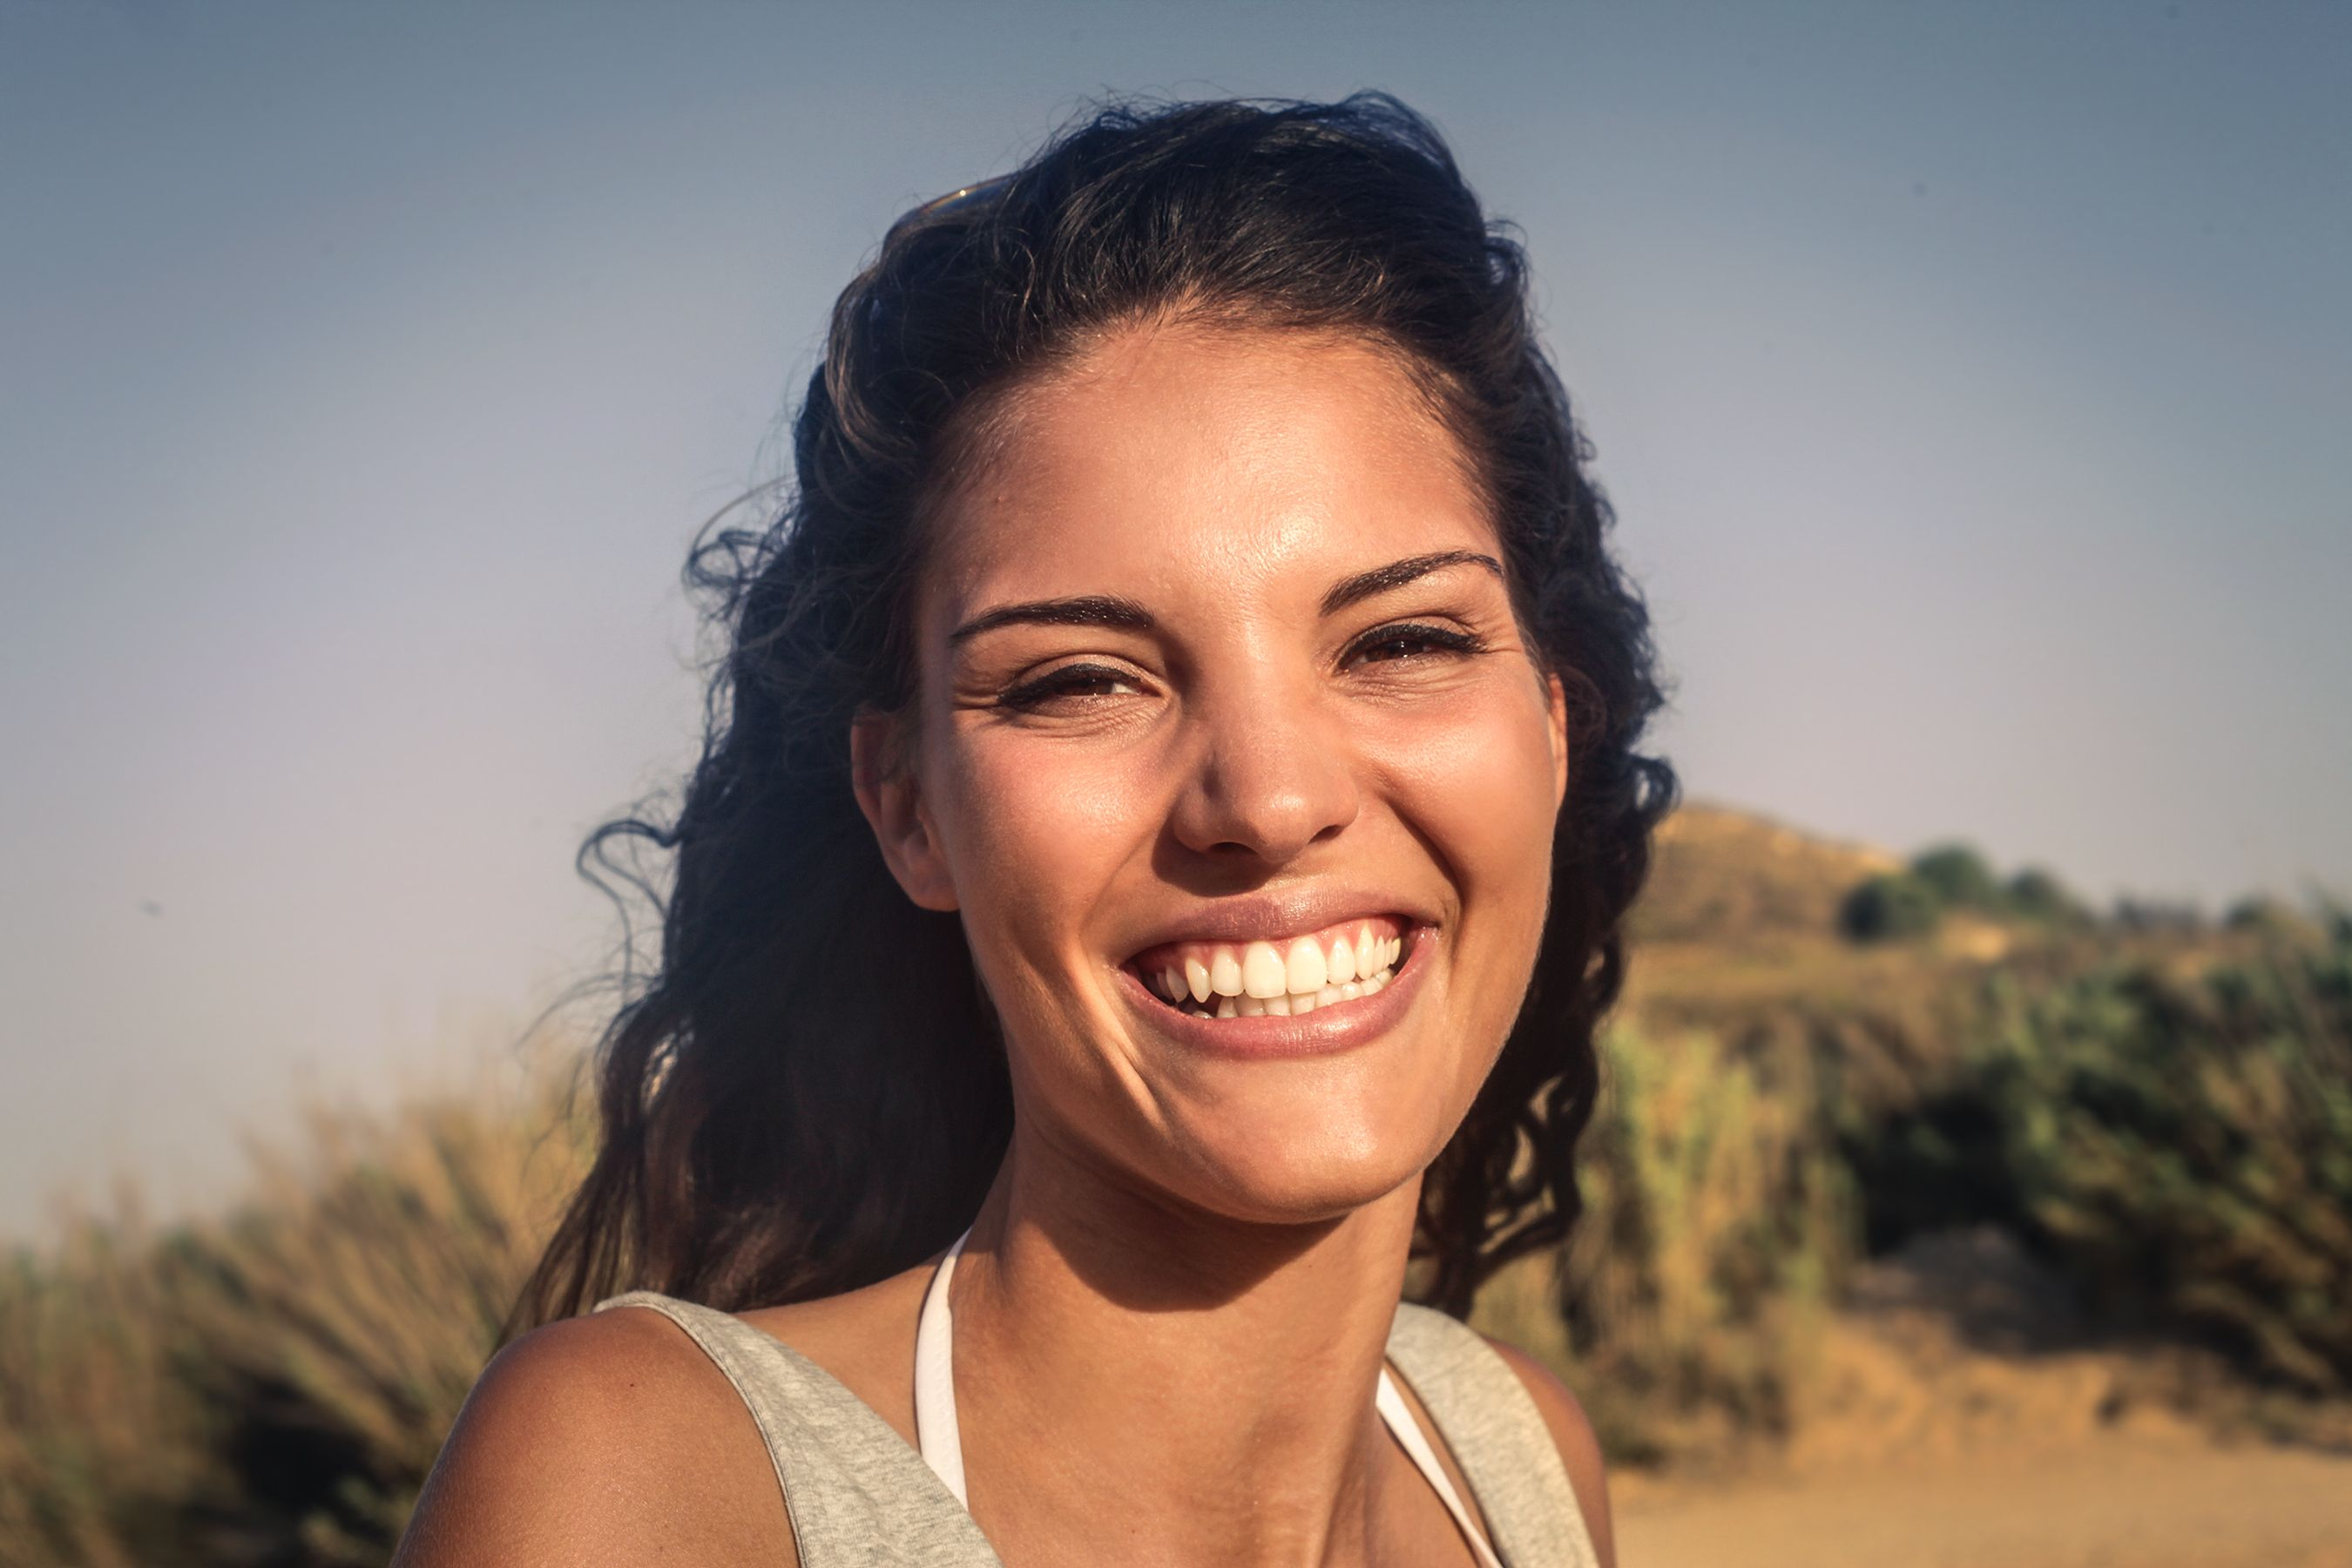 A woman smiling. │Source: Shutterstock